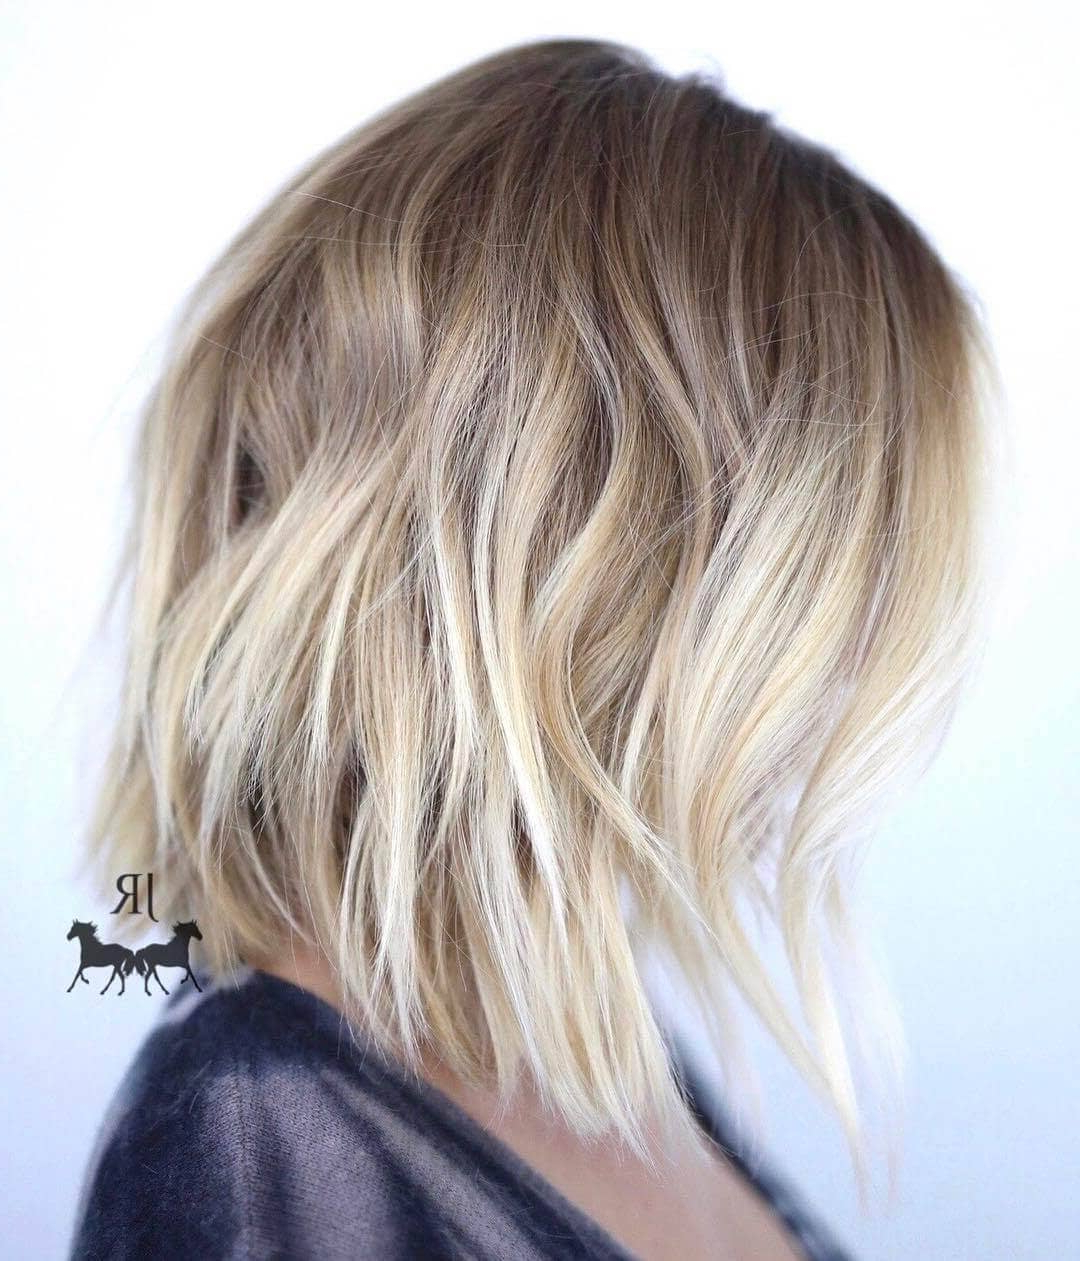 50 Fresh Short Blonde Hair Ideas To Update Your Style In 2018 Throughout Ash Blonde Bob Hairstyles With Feathered Layers (View 11 of 20)